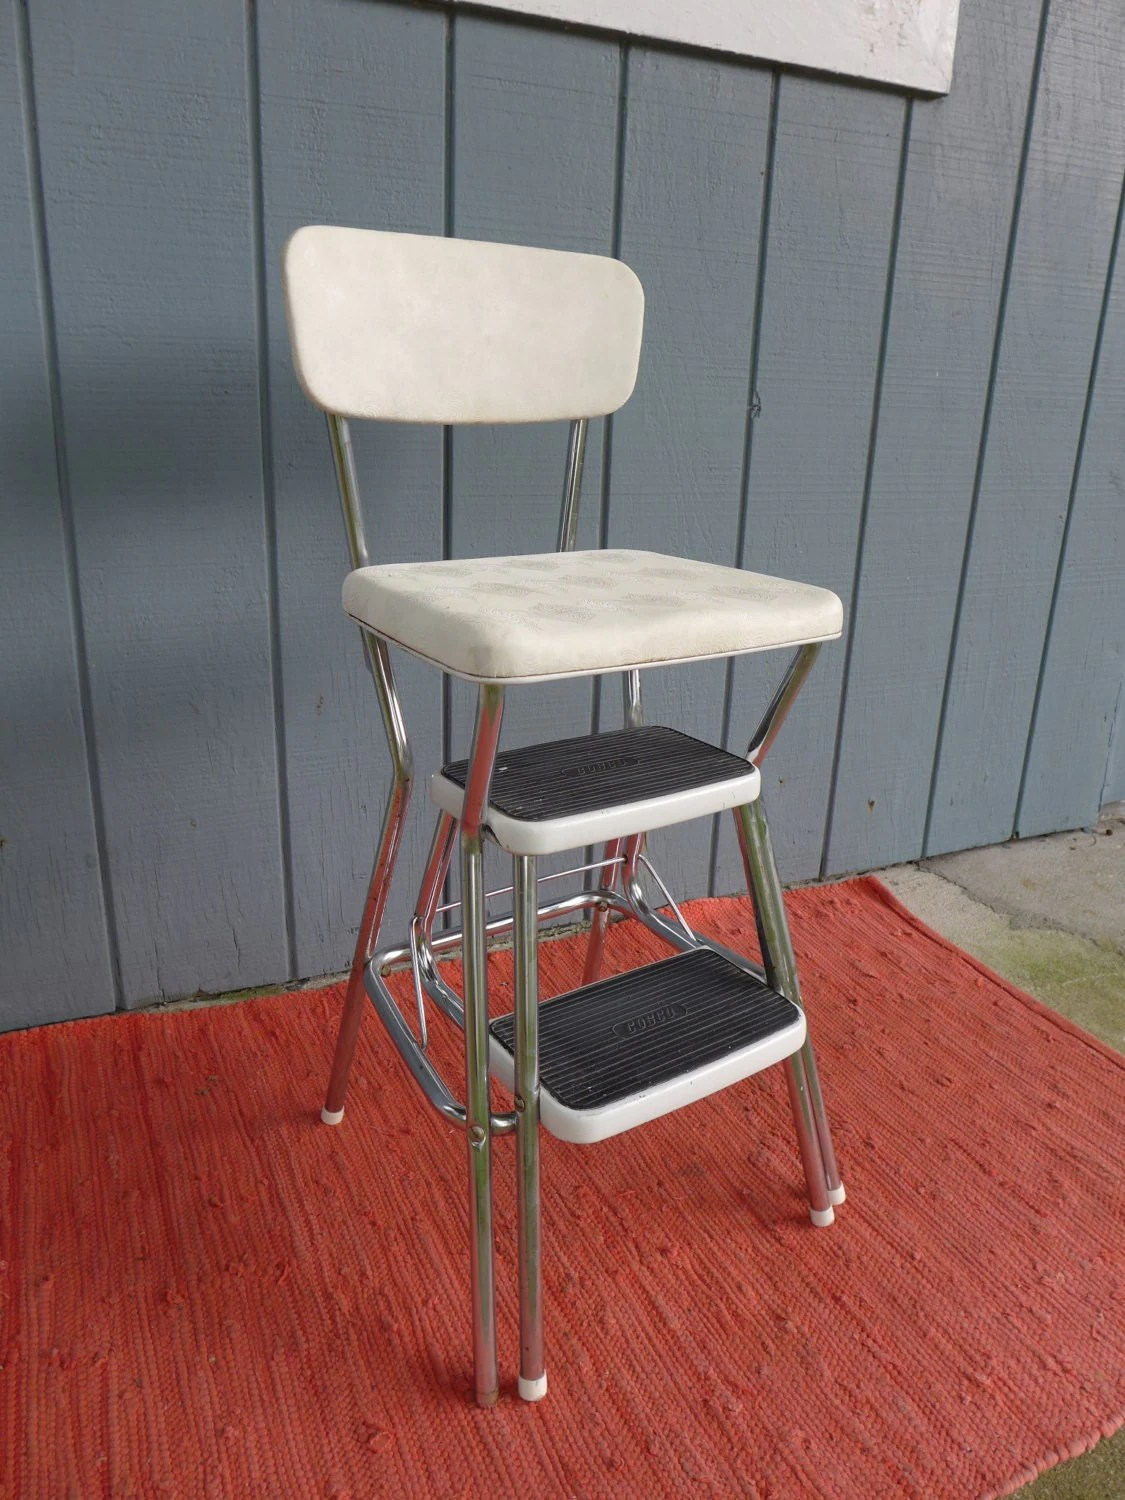 chair step stool diy cushion with piping vintage white cosco pull out steps metal